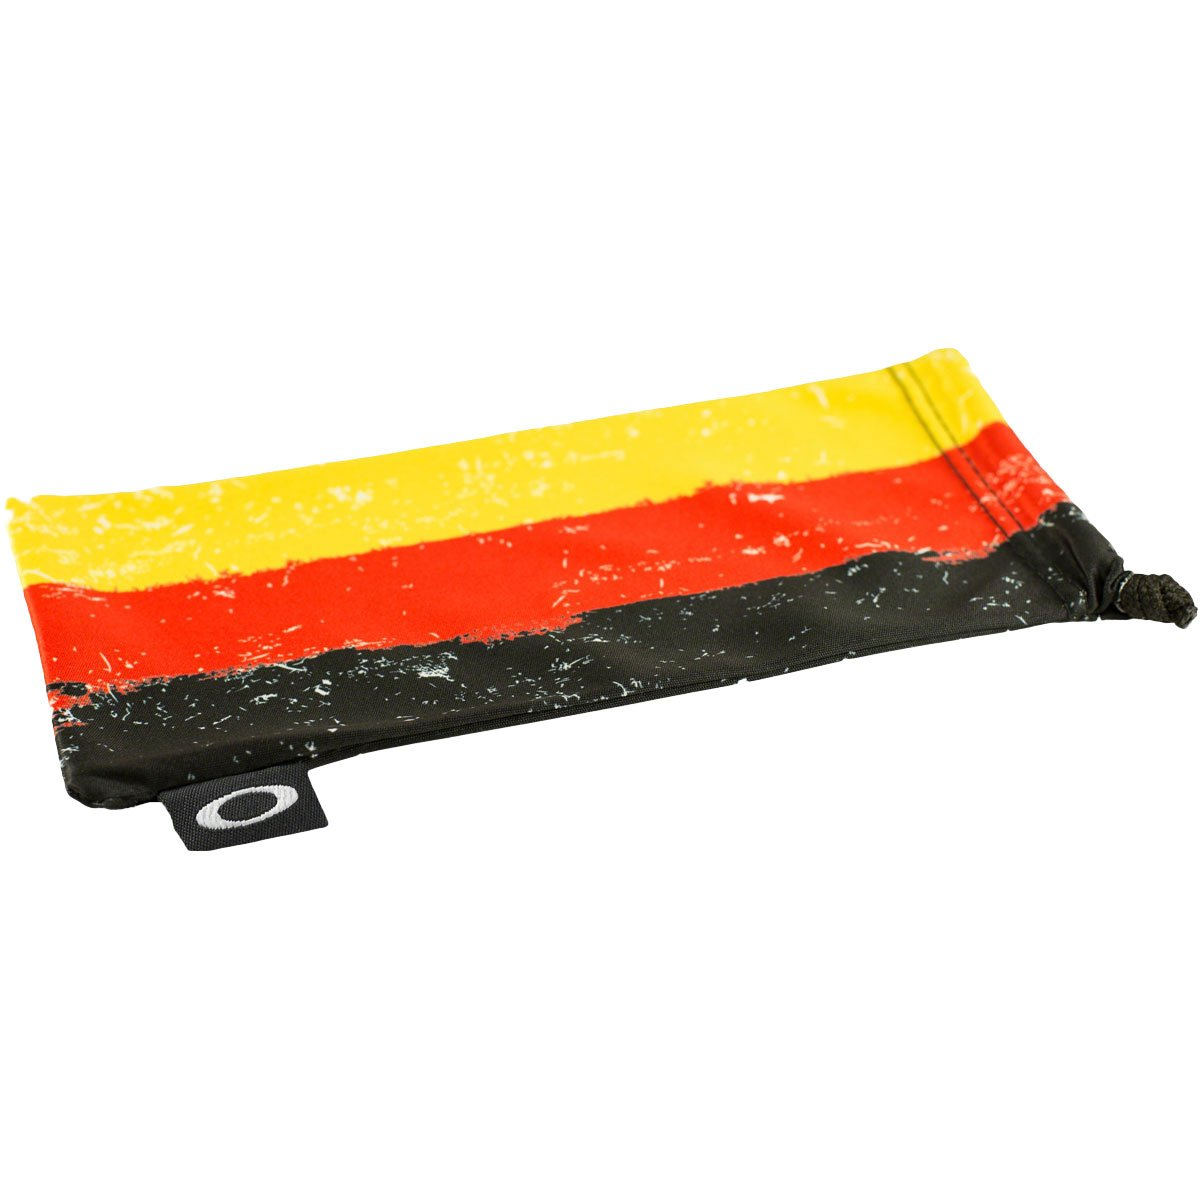 Oakley Microclear Microbag Sunglass Accessories - Germany Flag/One Size by Oakley